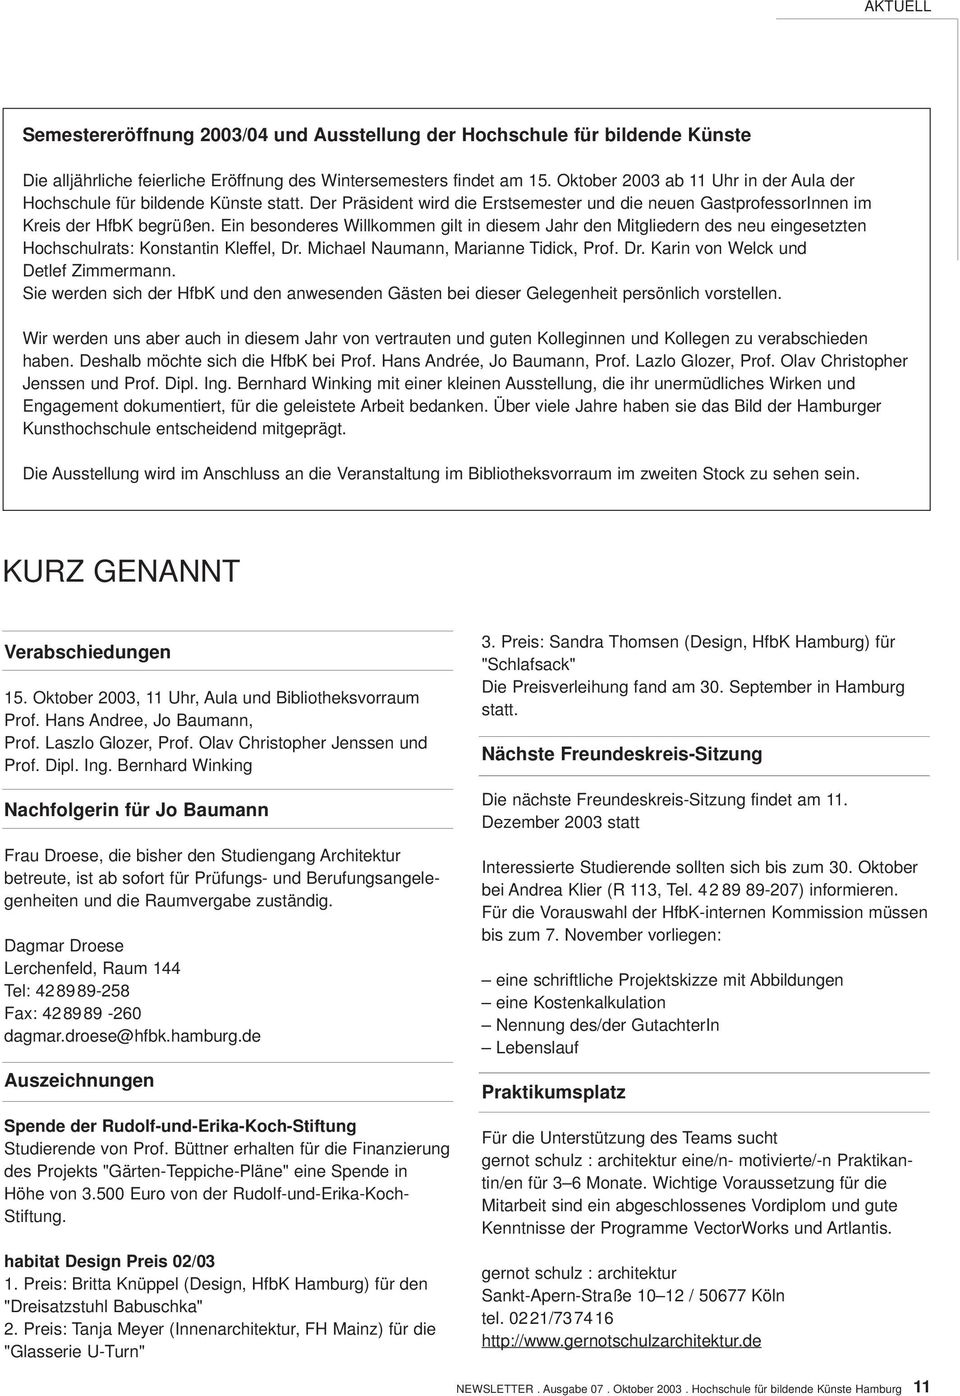 Fantastisch Grundform Des Lebenslaufes Bilder - Entry Level Resume ...